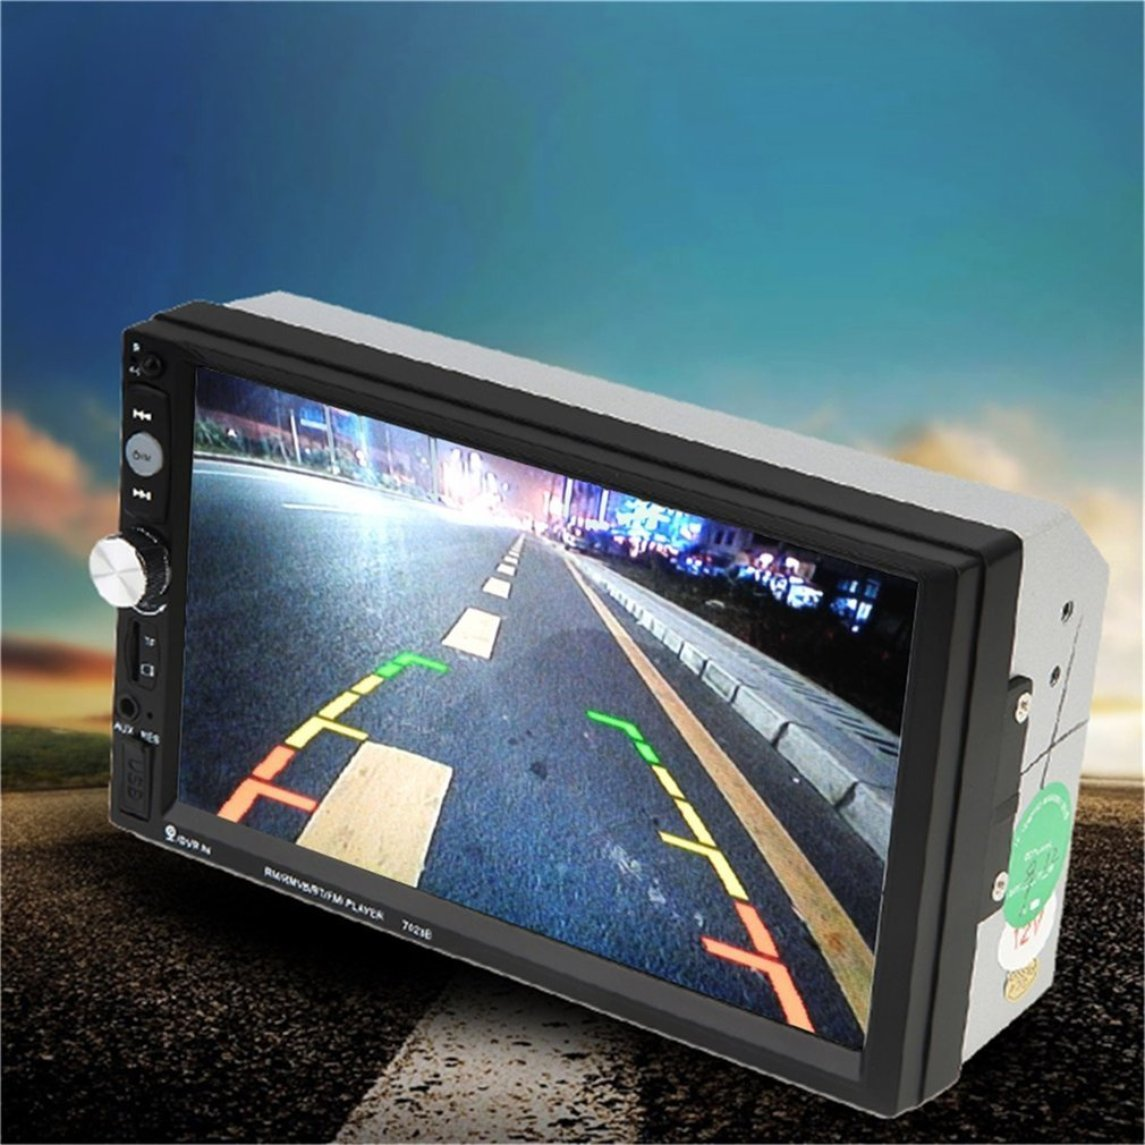 Footprintse 7023B Auto Car Doble DIN Reproductor de DVD del Coche 7 Pulgadas de Pantalla táctil TFT Multimedia Radio Reproductor de Bluetooth MP5 con ...